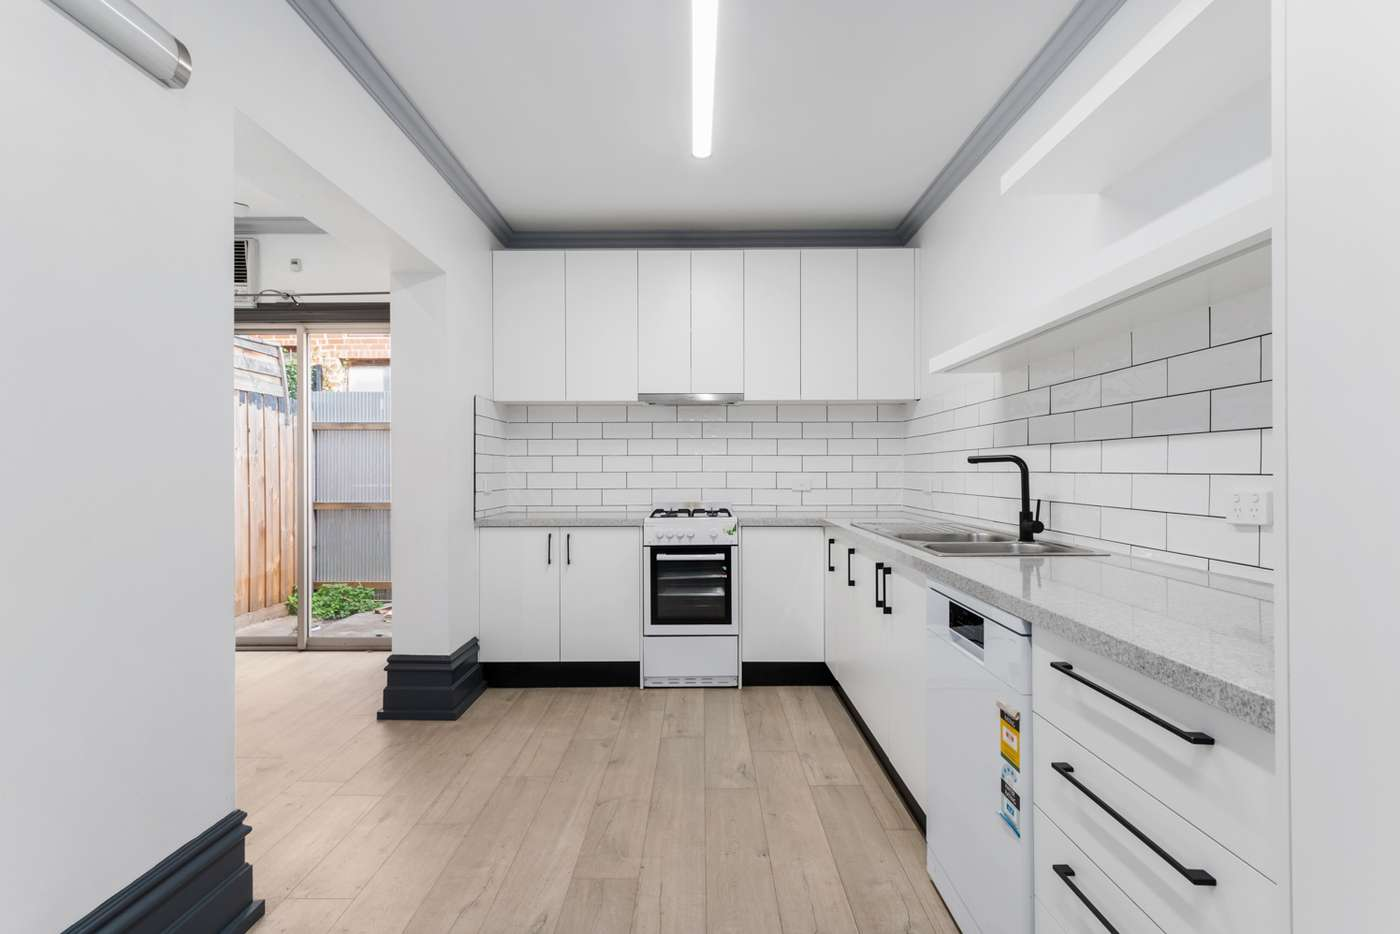 Main view of Homely house listing, 143 Peel Street, North Melbourne VIC 3051